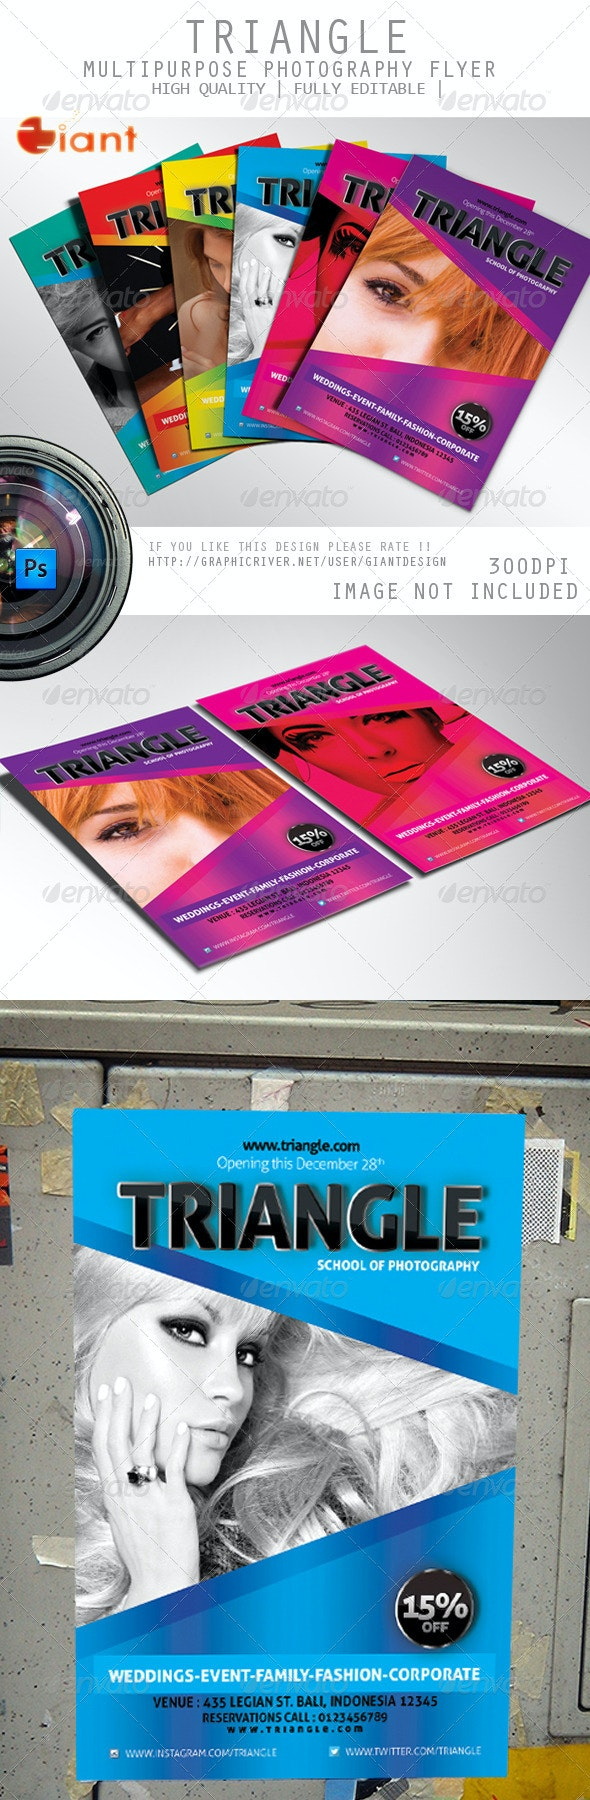 Triangle Multipurpose Photography Flyer - Corporate Flyers